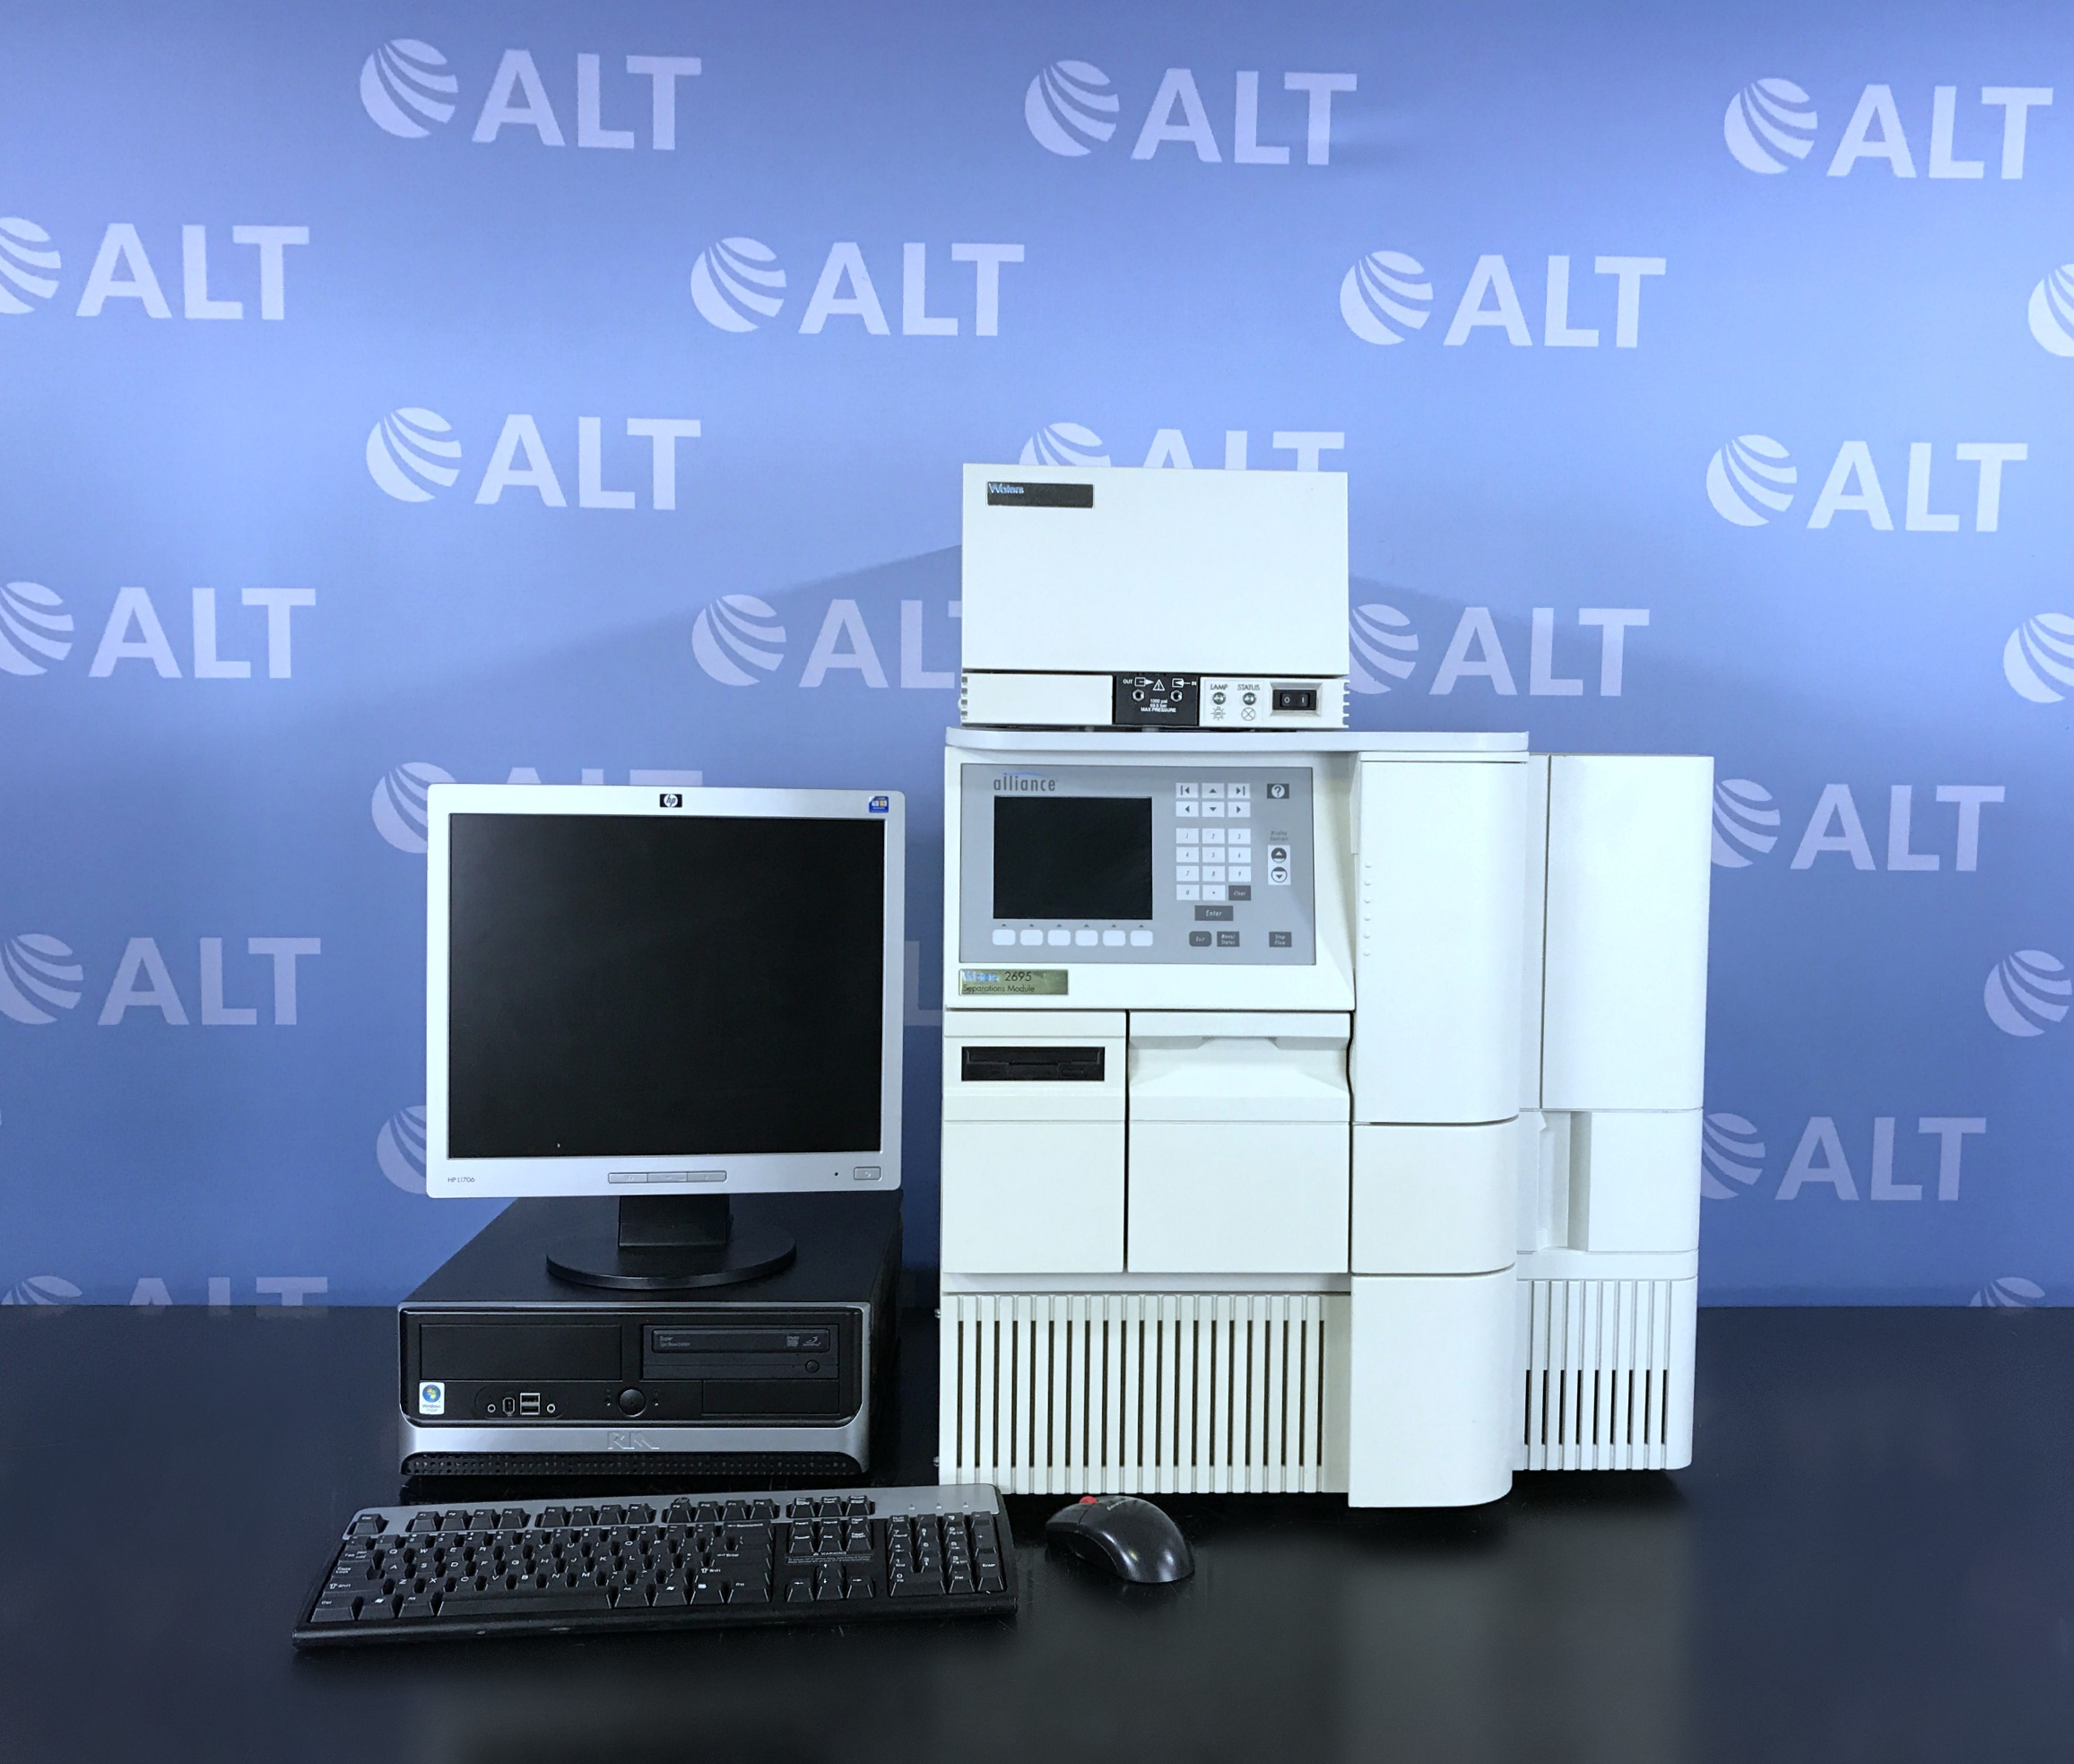 Waters Alliance 2695 HPLC with 2996 Photo Diode Array Detector Image